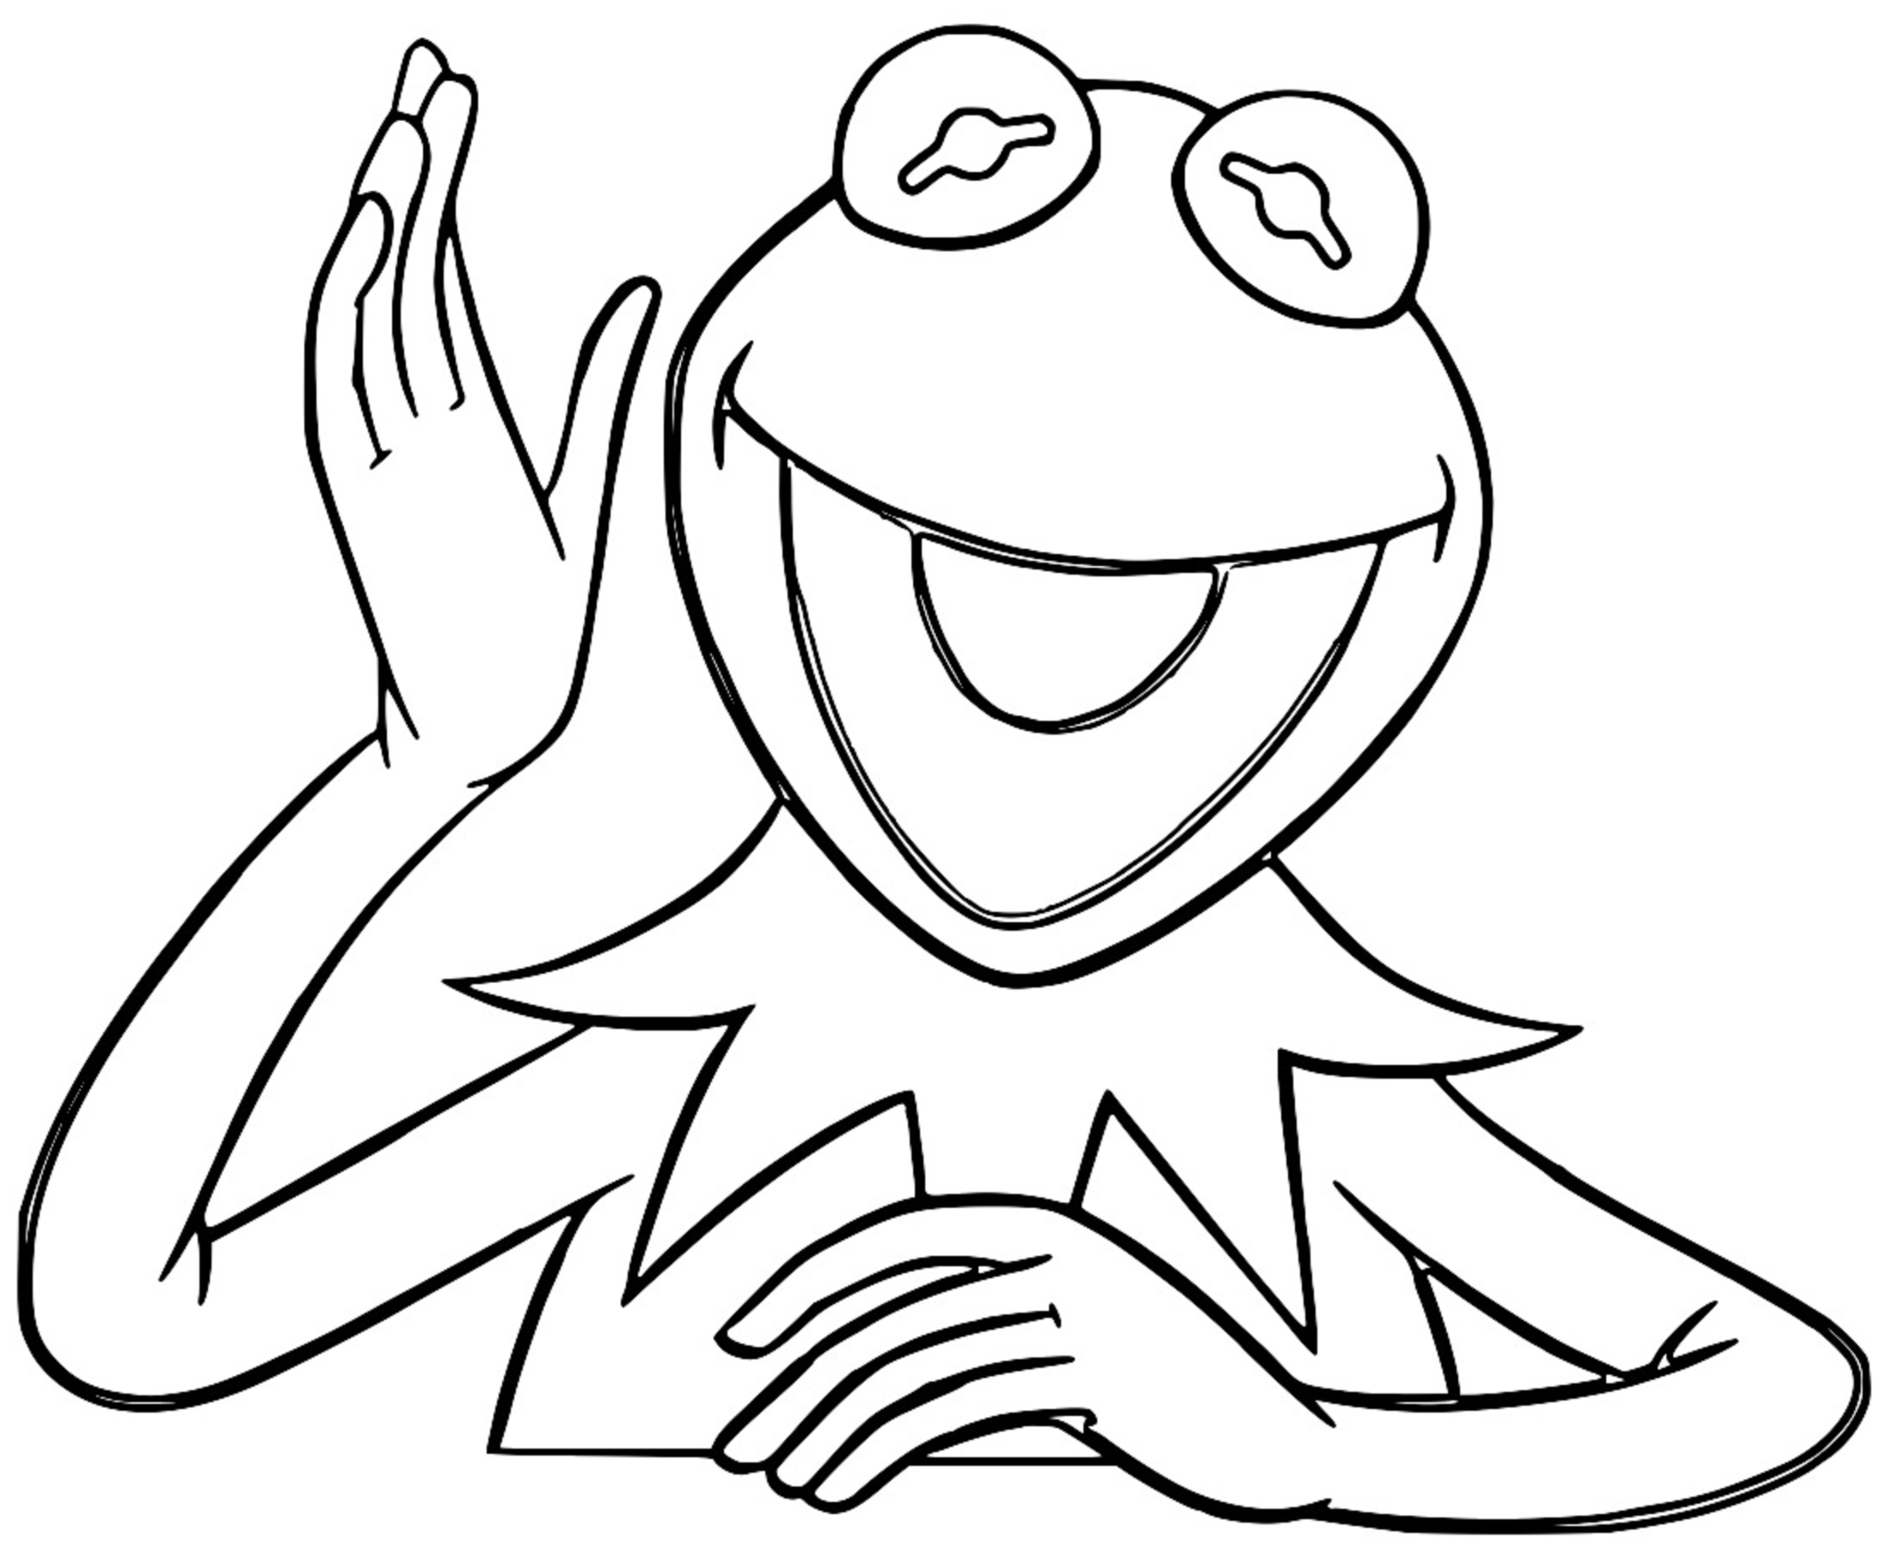 The Muppets kermit the frog 6 Cartoon Coloring Page